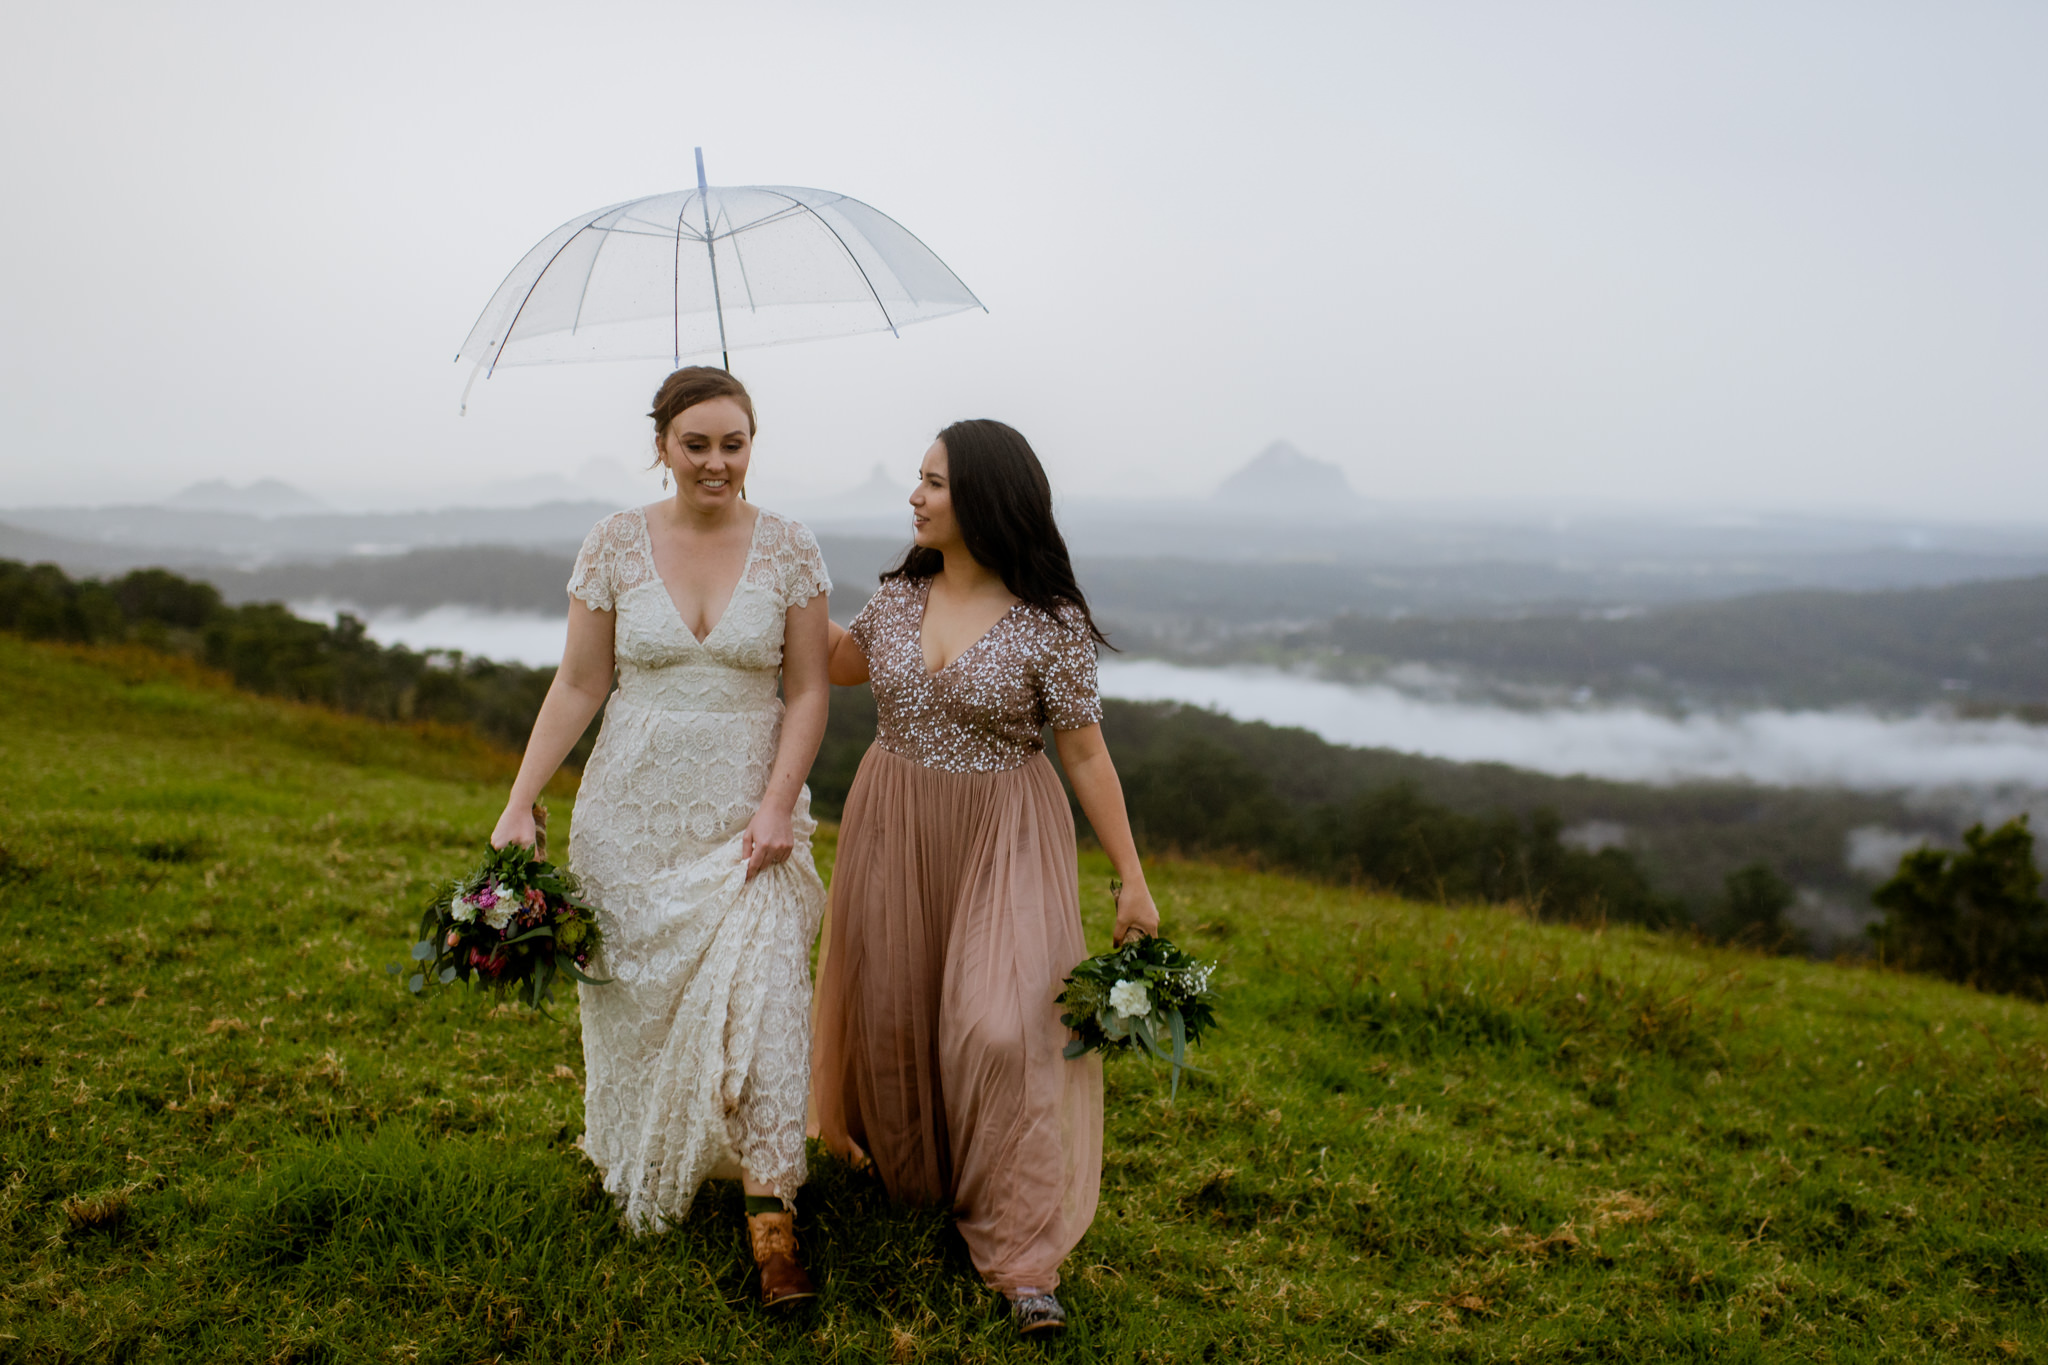 Same sex couple walk through a grassy hill overlooking a cloudy valley